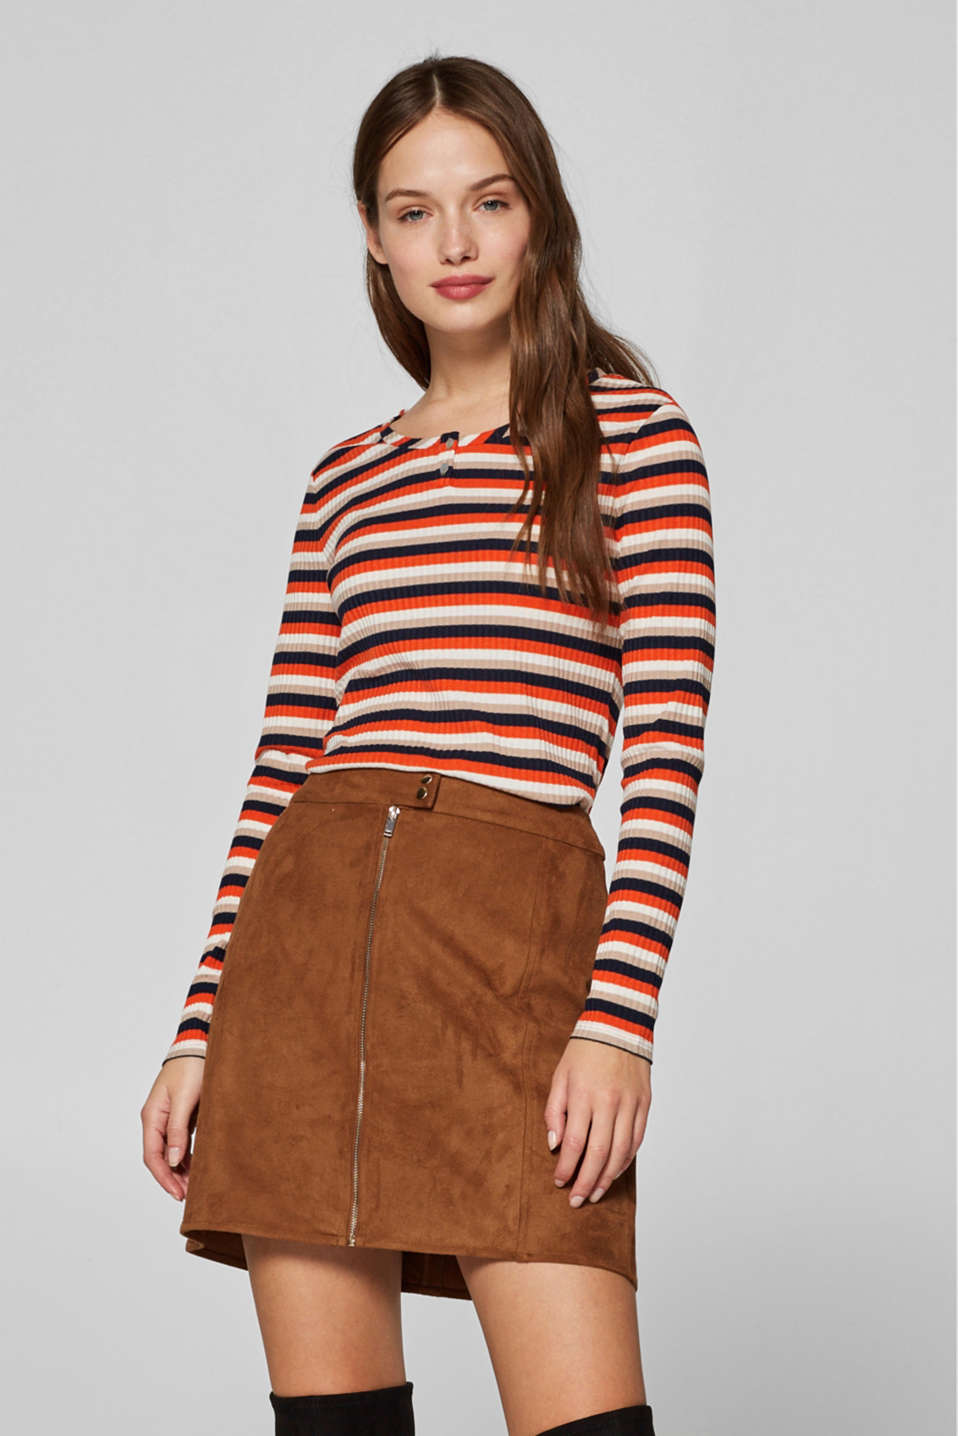 Esprit - Long sleeve top with a striped design